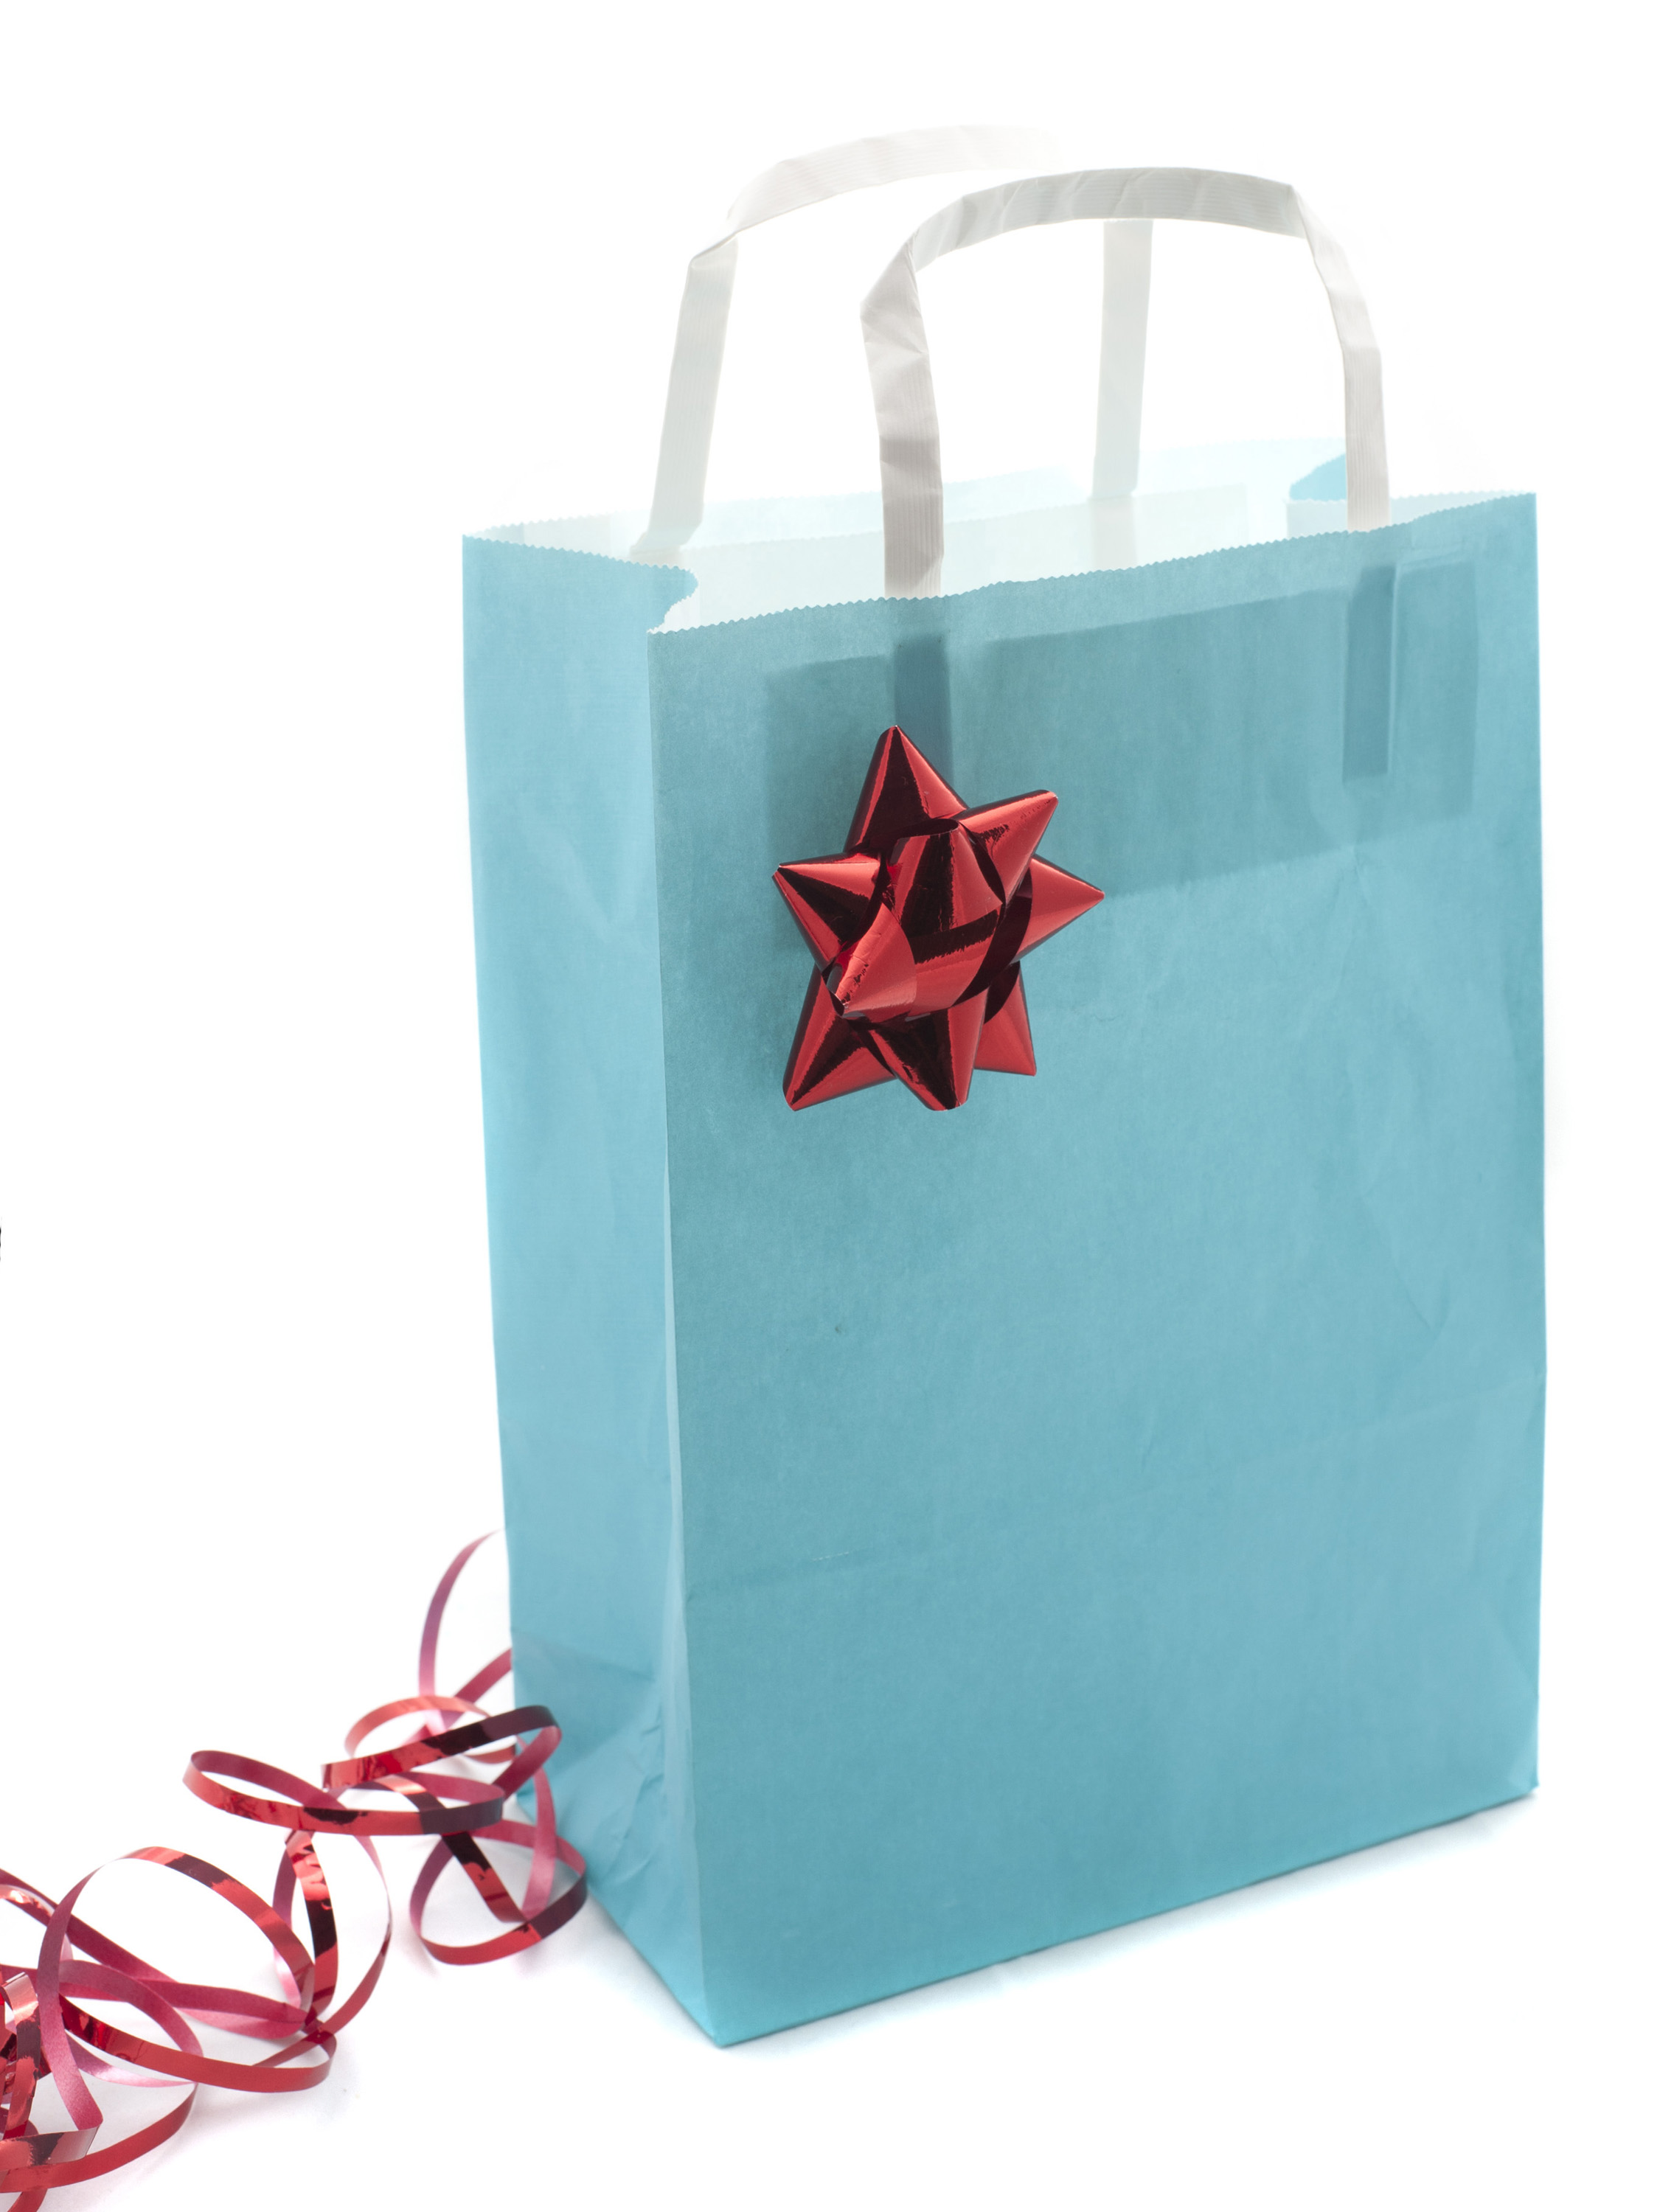 Pretty pastel blue Christmas shopping bag decorated with an ornamental red bow and twirled ribbon on a white background